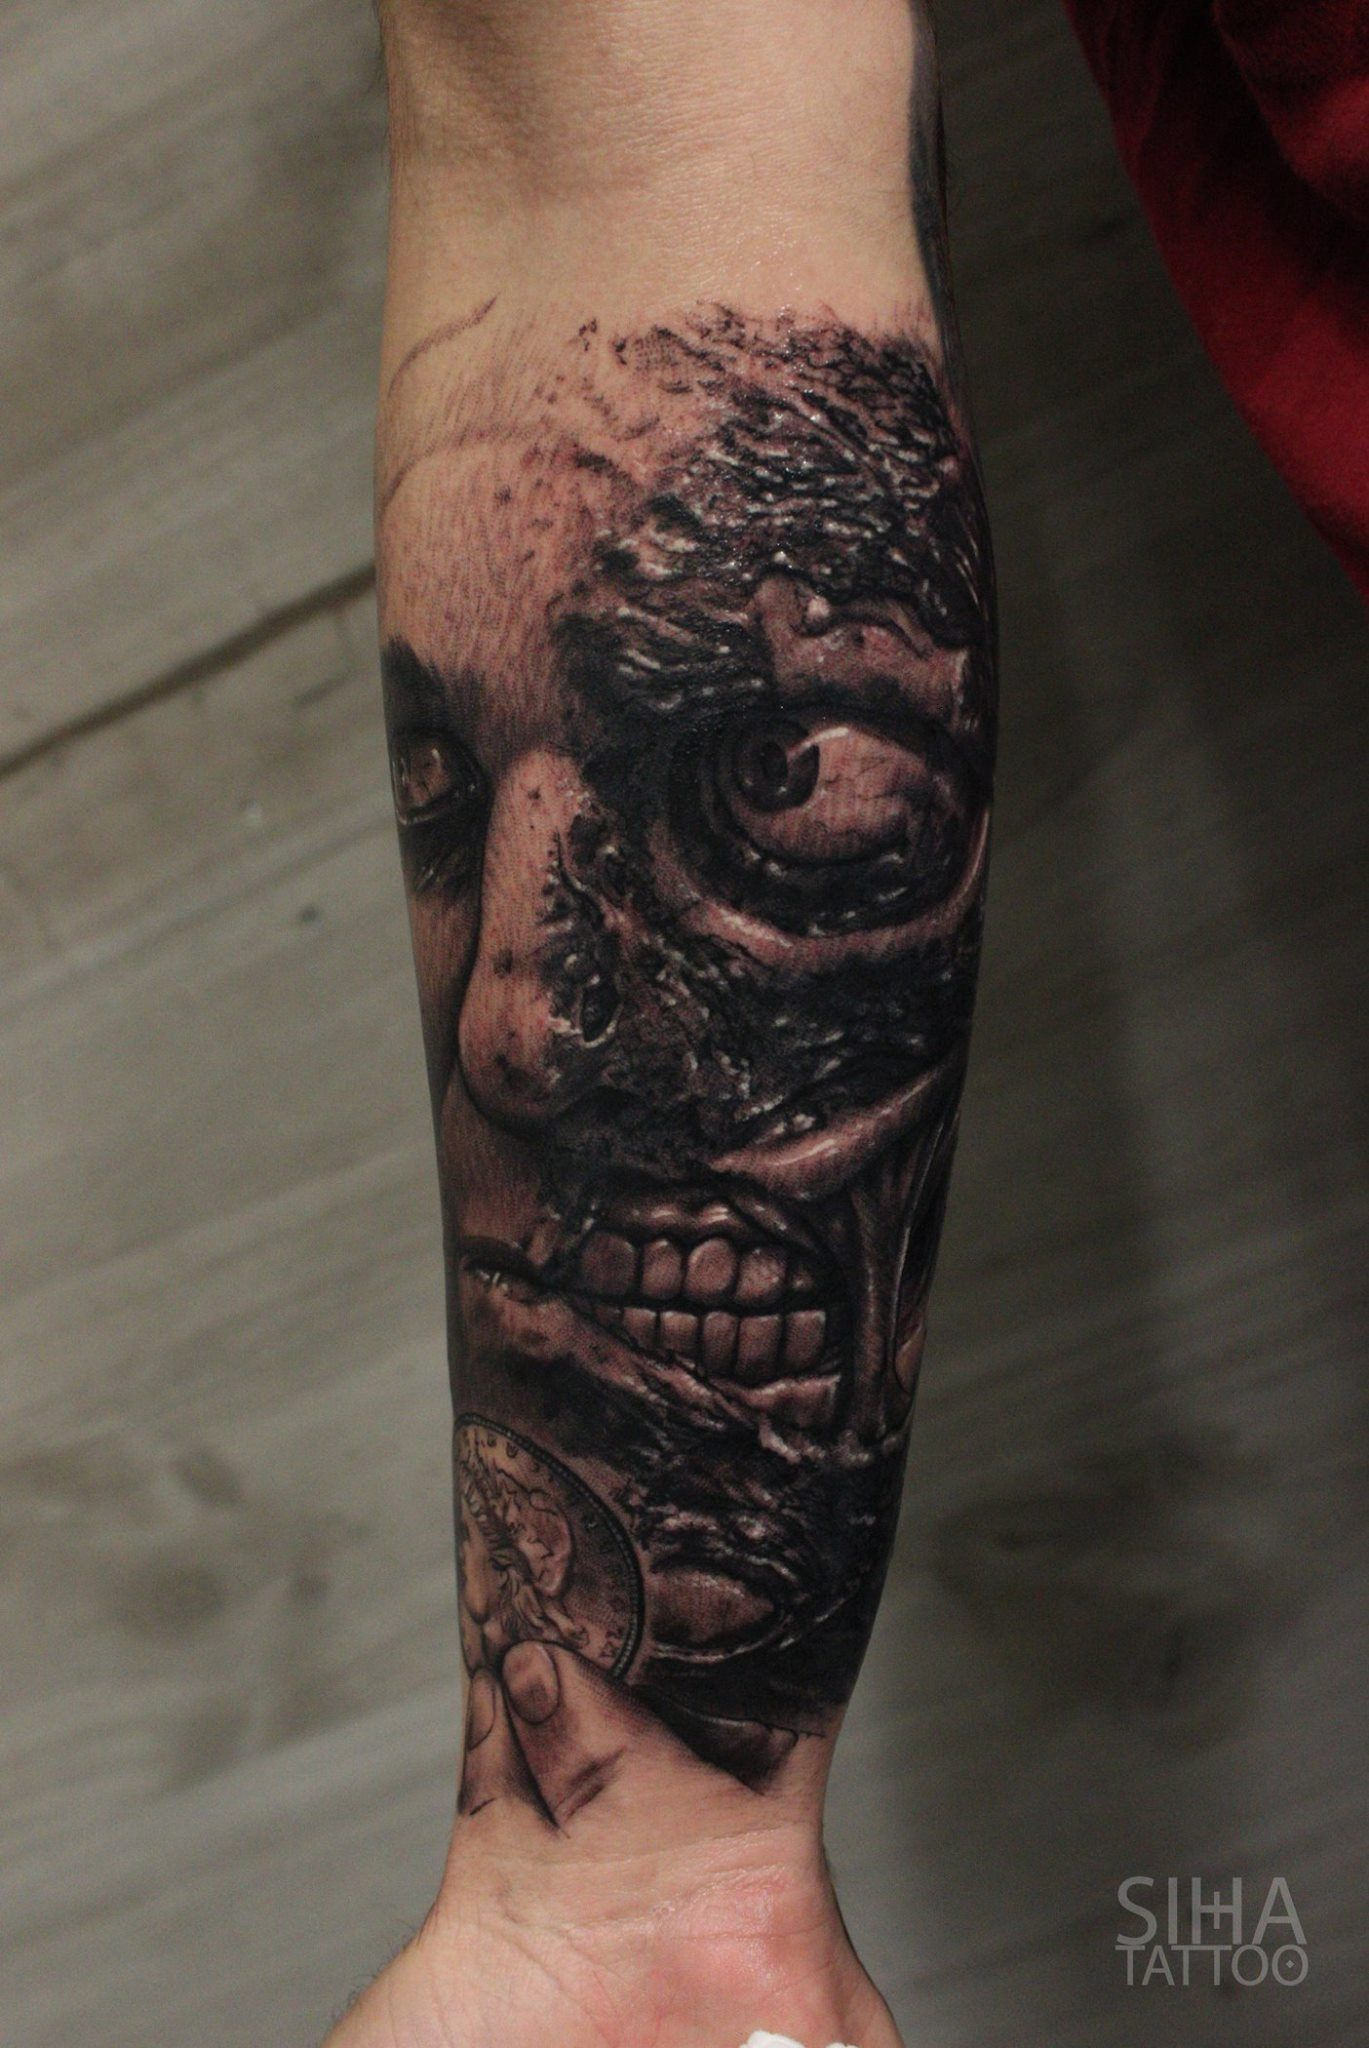 Two-face / Dos Caras Tattoo by Mocho at Siha Tattoo